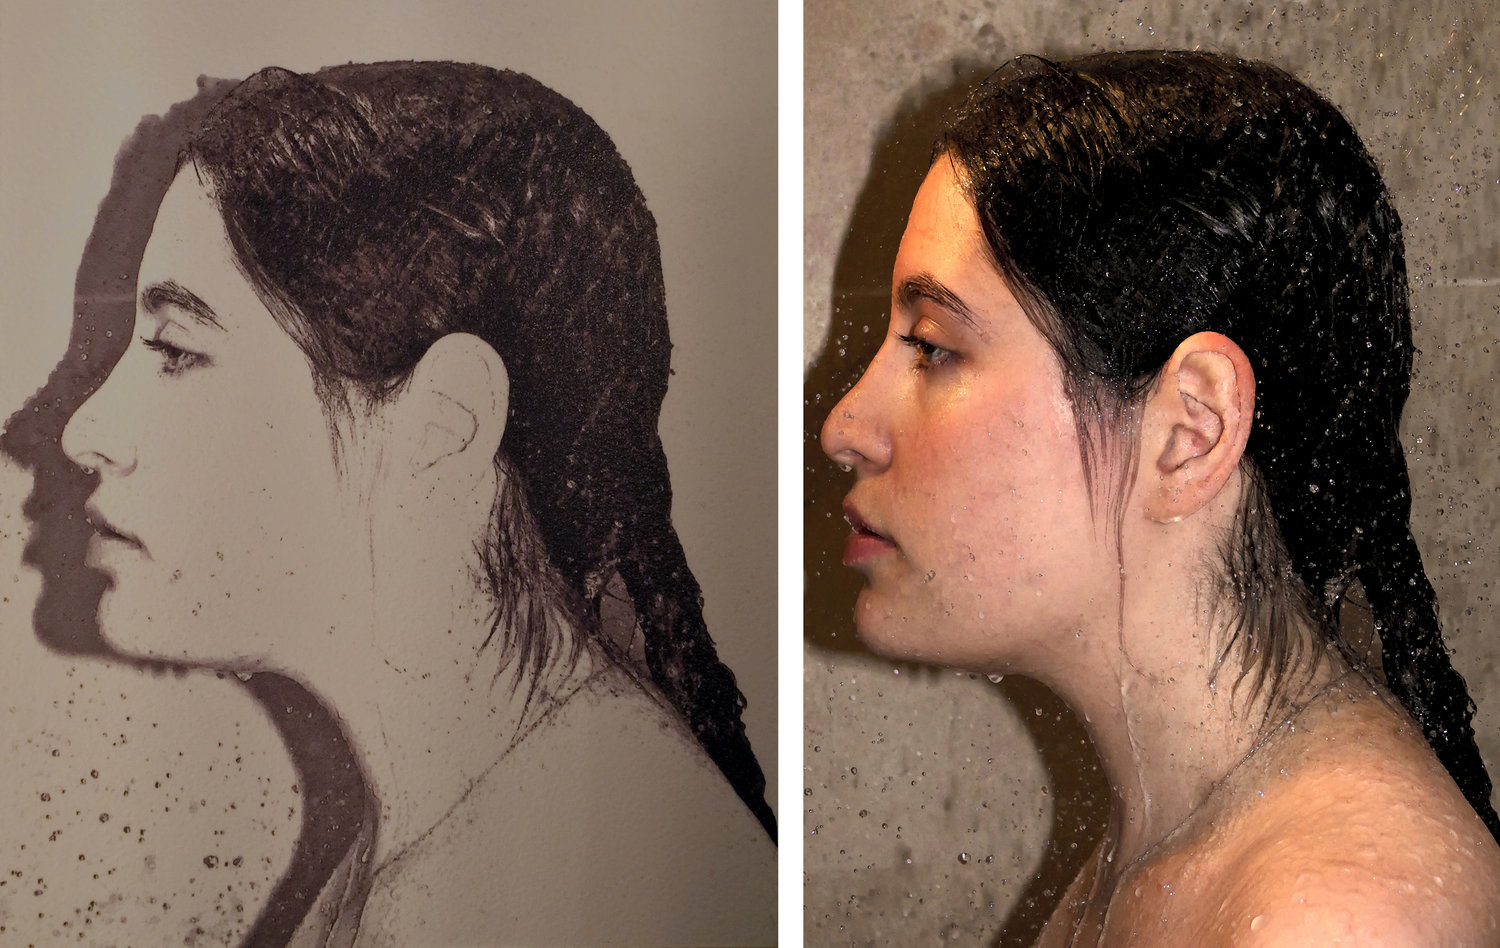 Sheryl Luxenburg  |  Dread (In the Shower Series)  |  Left: Preliminary Ink Drawing on paper -  Right: Final Acrylic on linen  |  36 x 24 inches or 91 ½ x 61 cm